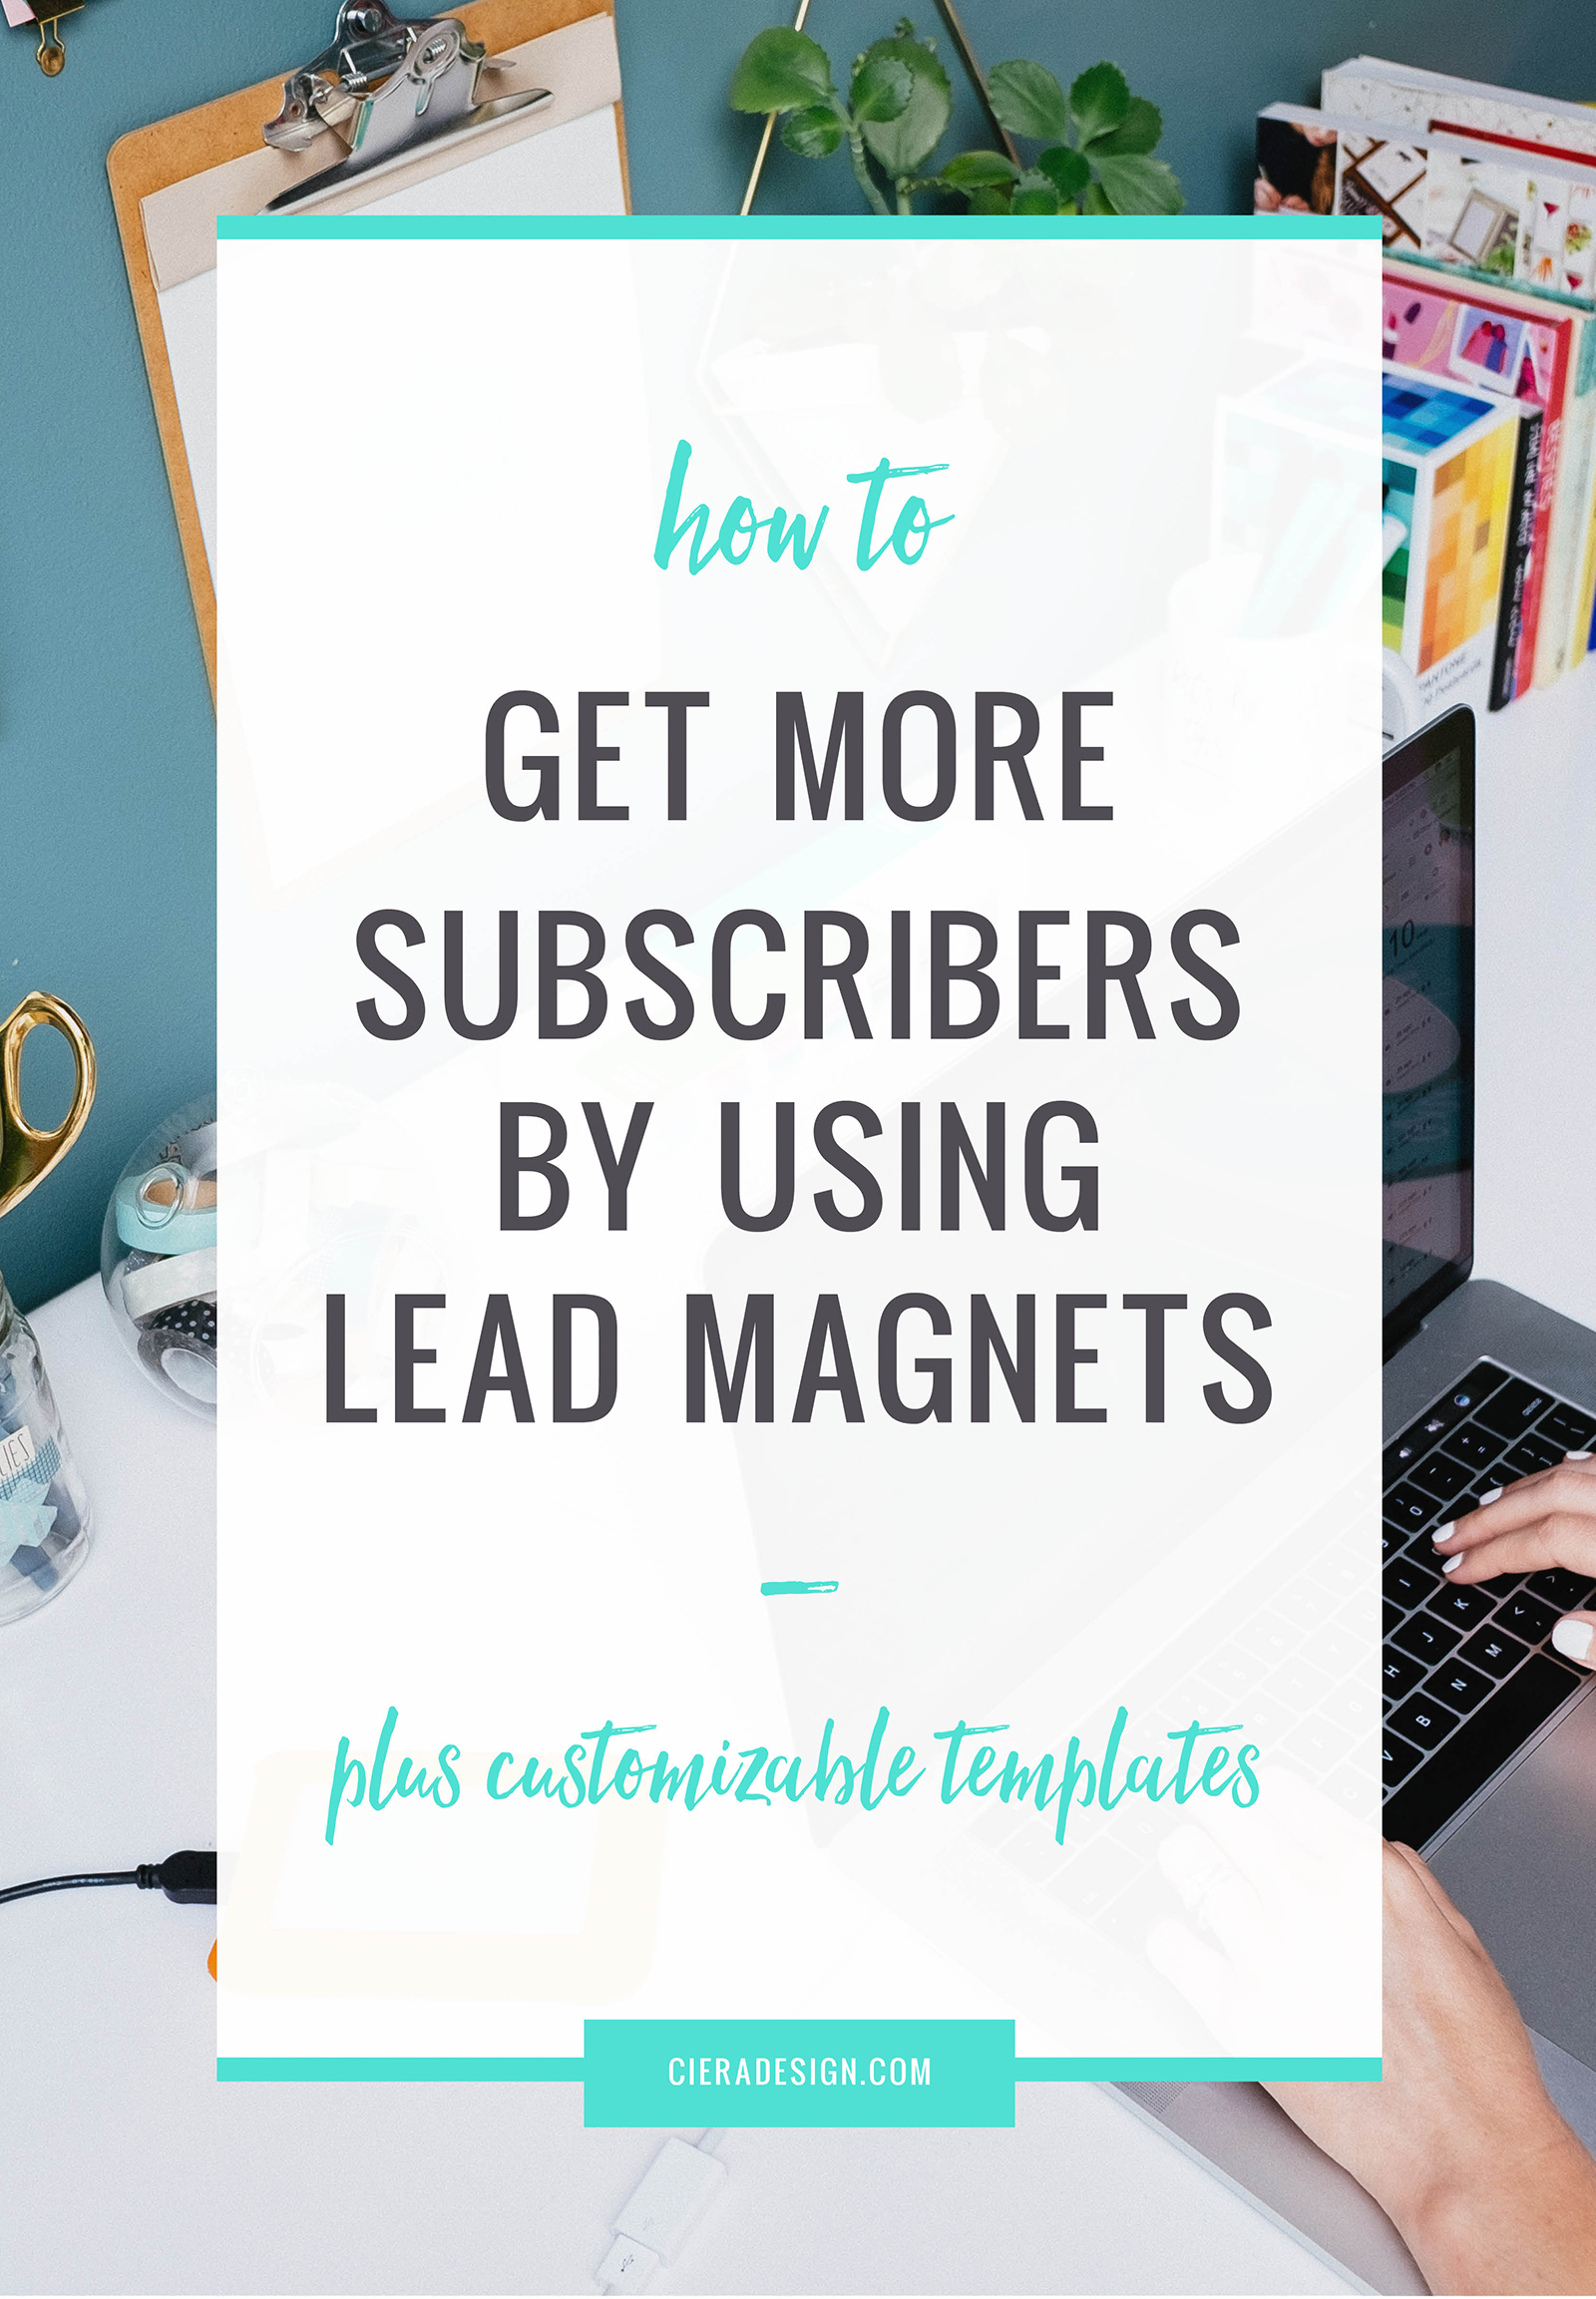 A few years ago, I increased my email subscribers by 600% in 1 month by changing just one thing – I implemented content upgrades and strategic lead magnets. I know first hand how drastically your list can grow by using this relatively simple concept: give something away for free in return for an email address. Although the concept is easy, planning this free incentive can feel a little daunting… you have to come up with the content, design it and figure out how to deliver – it can start to feel overwhelming, in which case, it keeps getting pushed down to the bottom of your to-do list and your email list growth becomes stagnant. Well, I'm here to tell you: your opt-in doesn't have to be complicated, in fact, something simple like a cheat sheet or checklist often converts best!